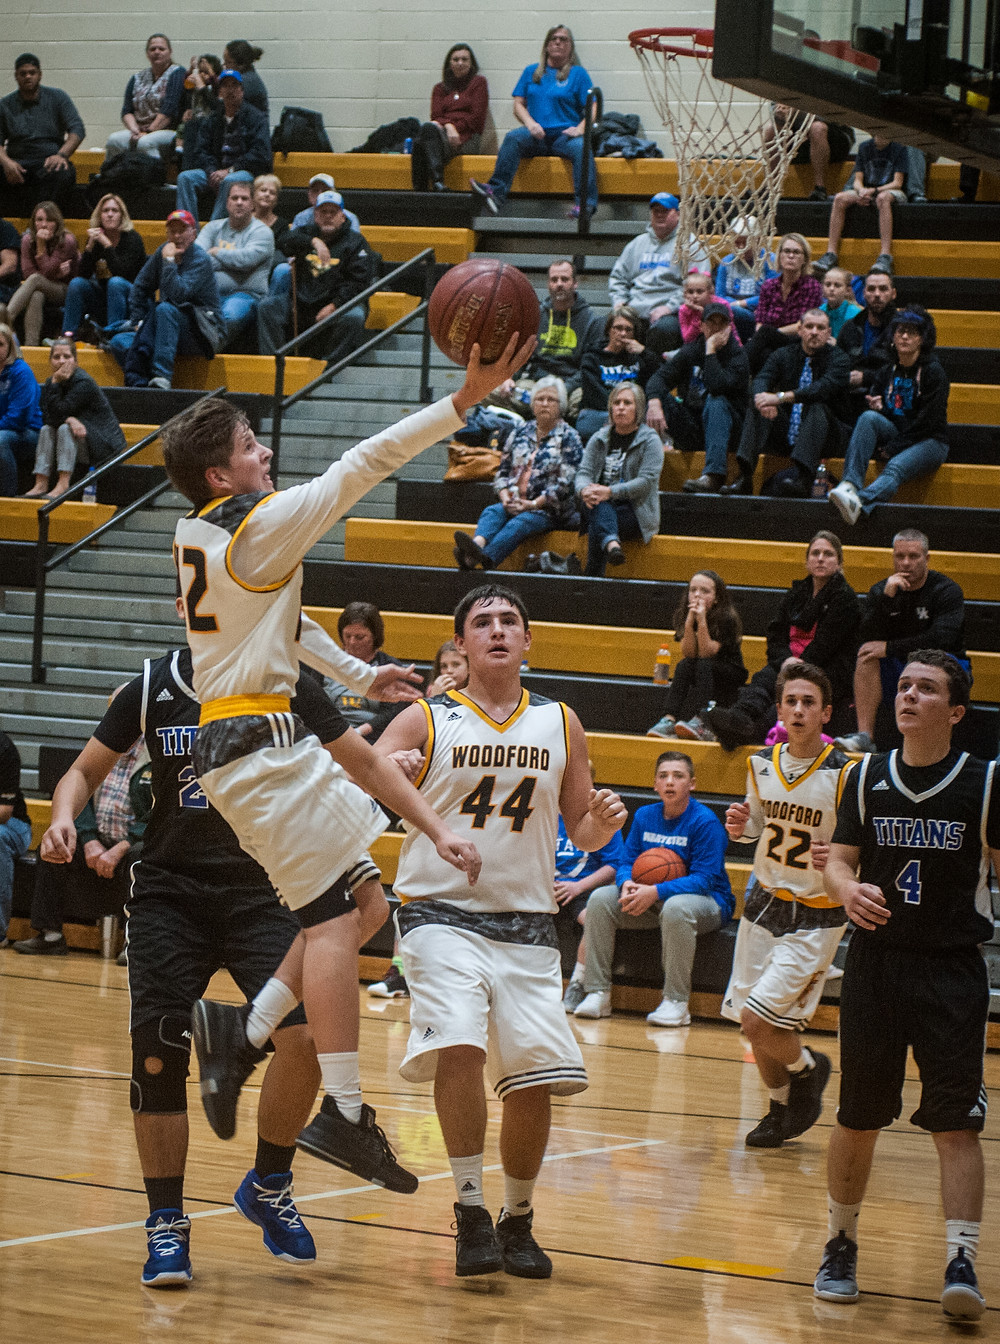 BRIAN WHITE glides to the rim for a layup in Woodford County Middle School's 8th grade game against Royal Springs on Monday, Nov. 13. (Photo by Bill Caine)